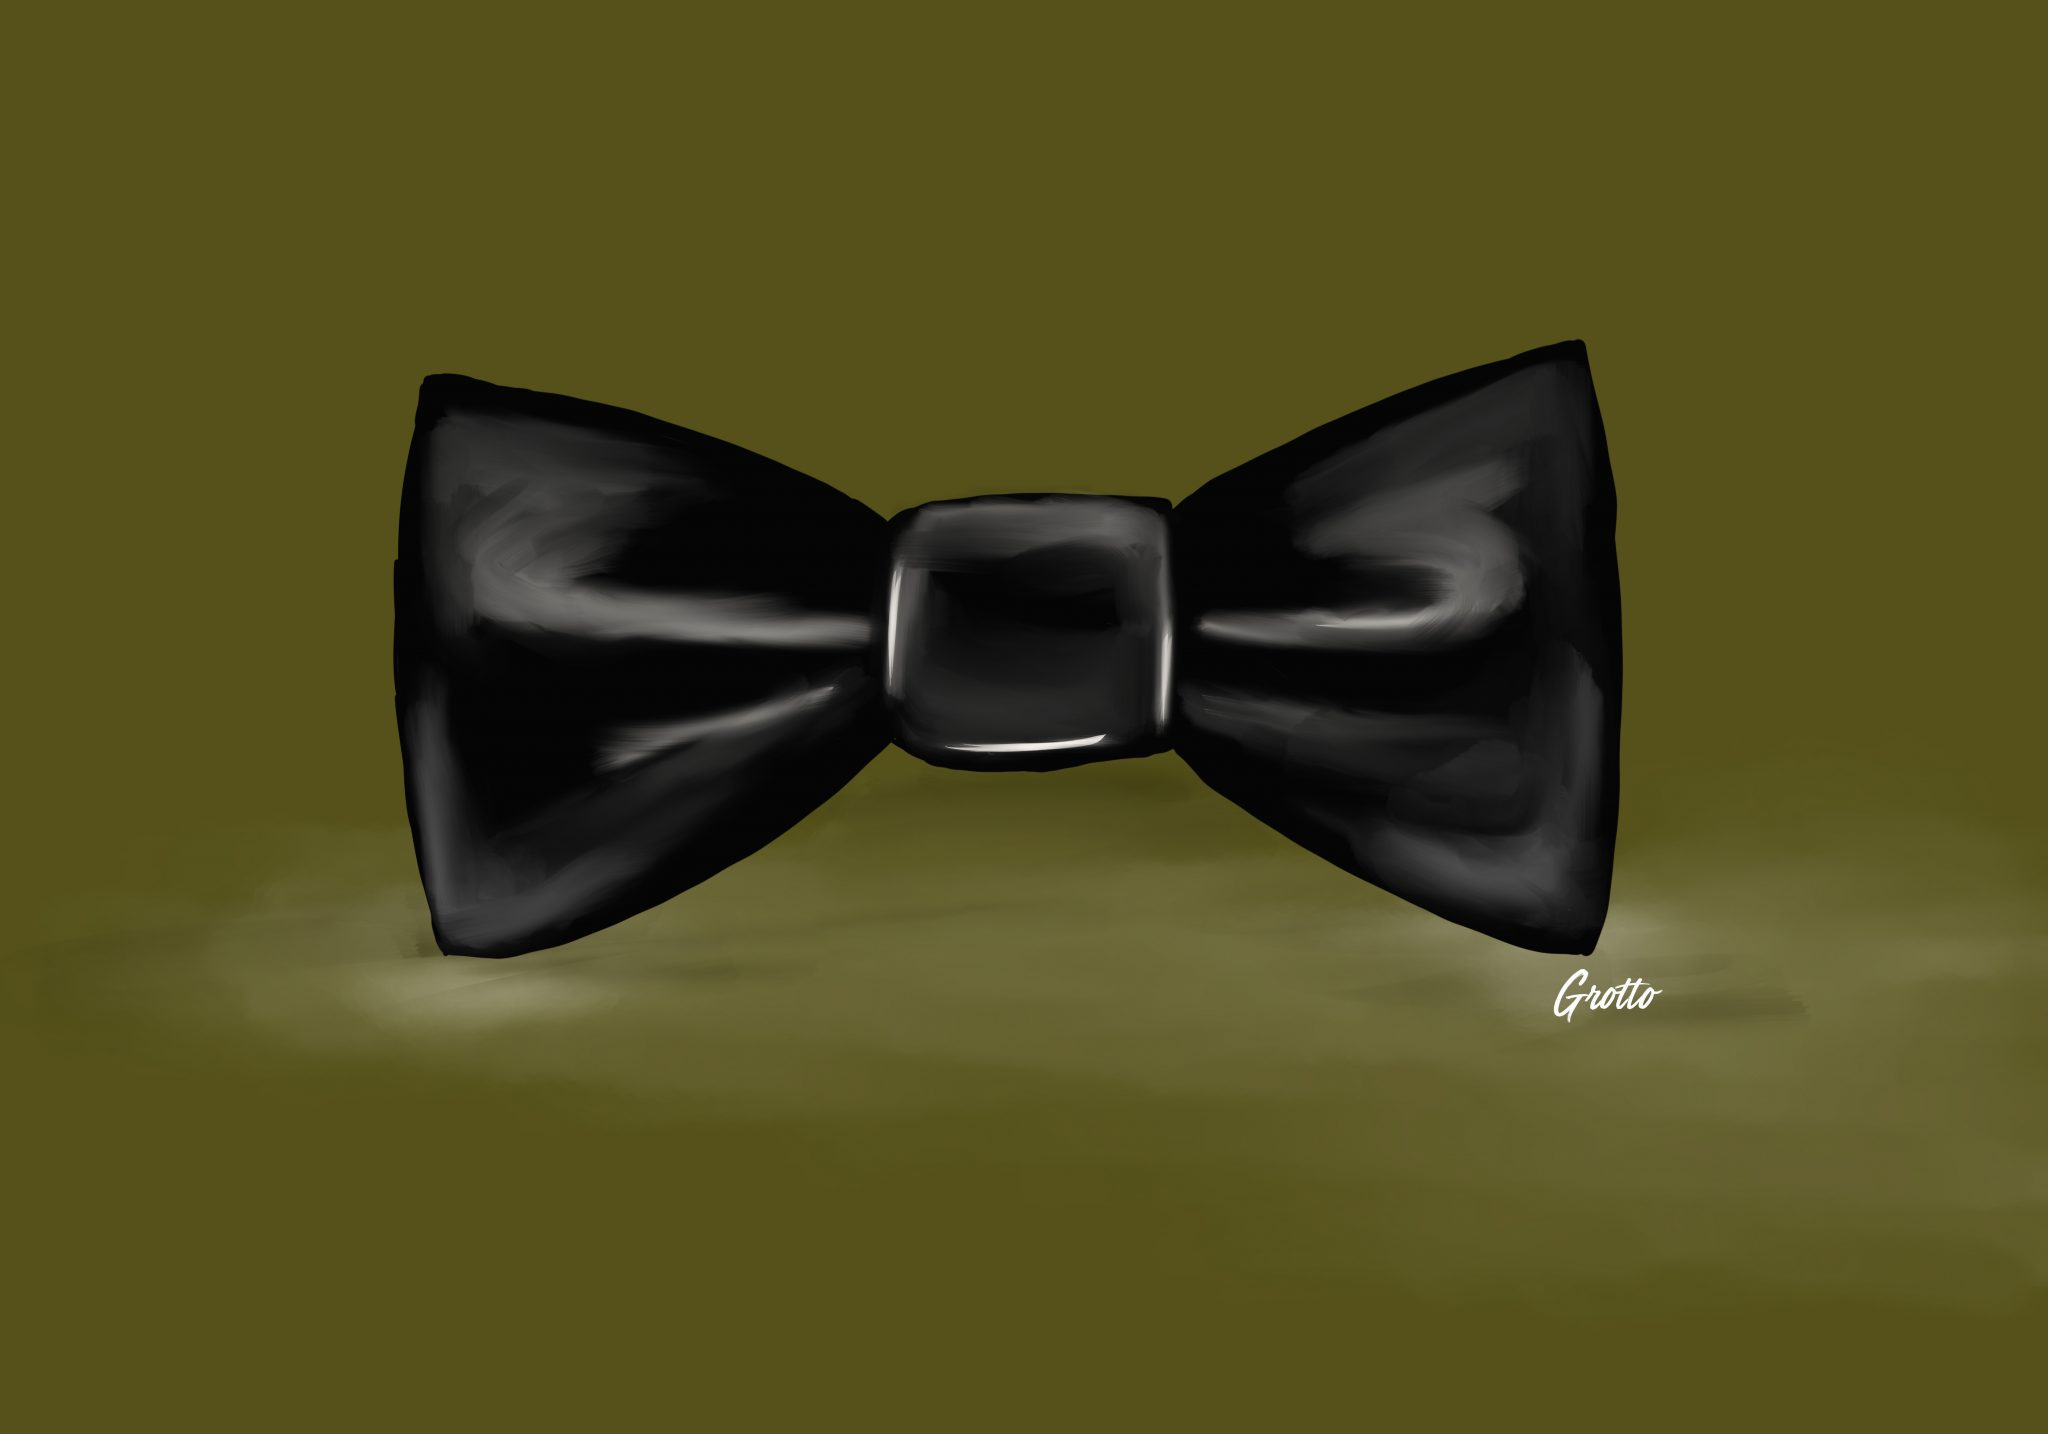 Grotto illustration of a black bow tie for the groom's duties in wedding planning.